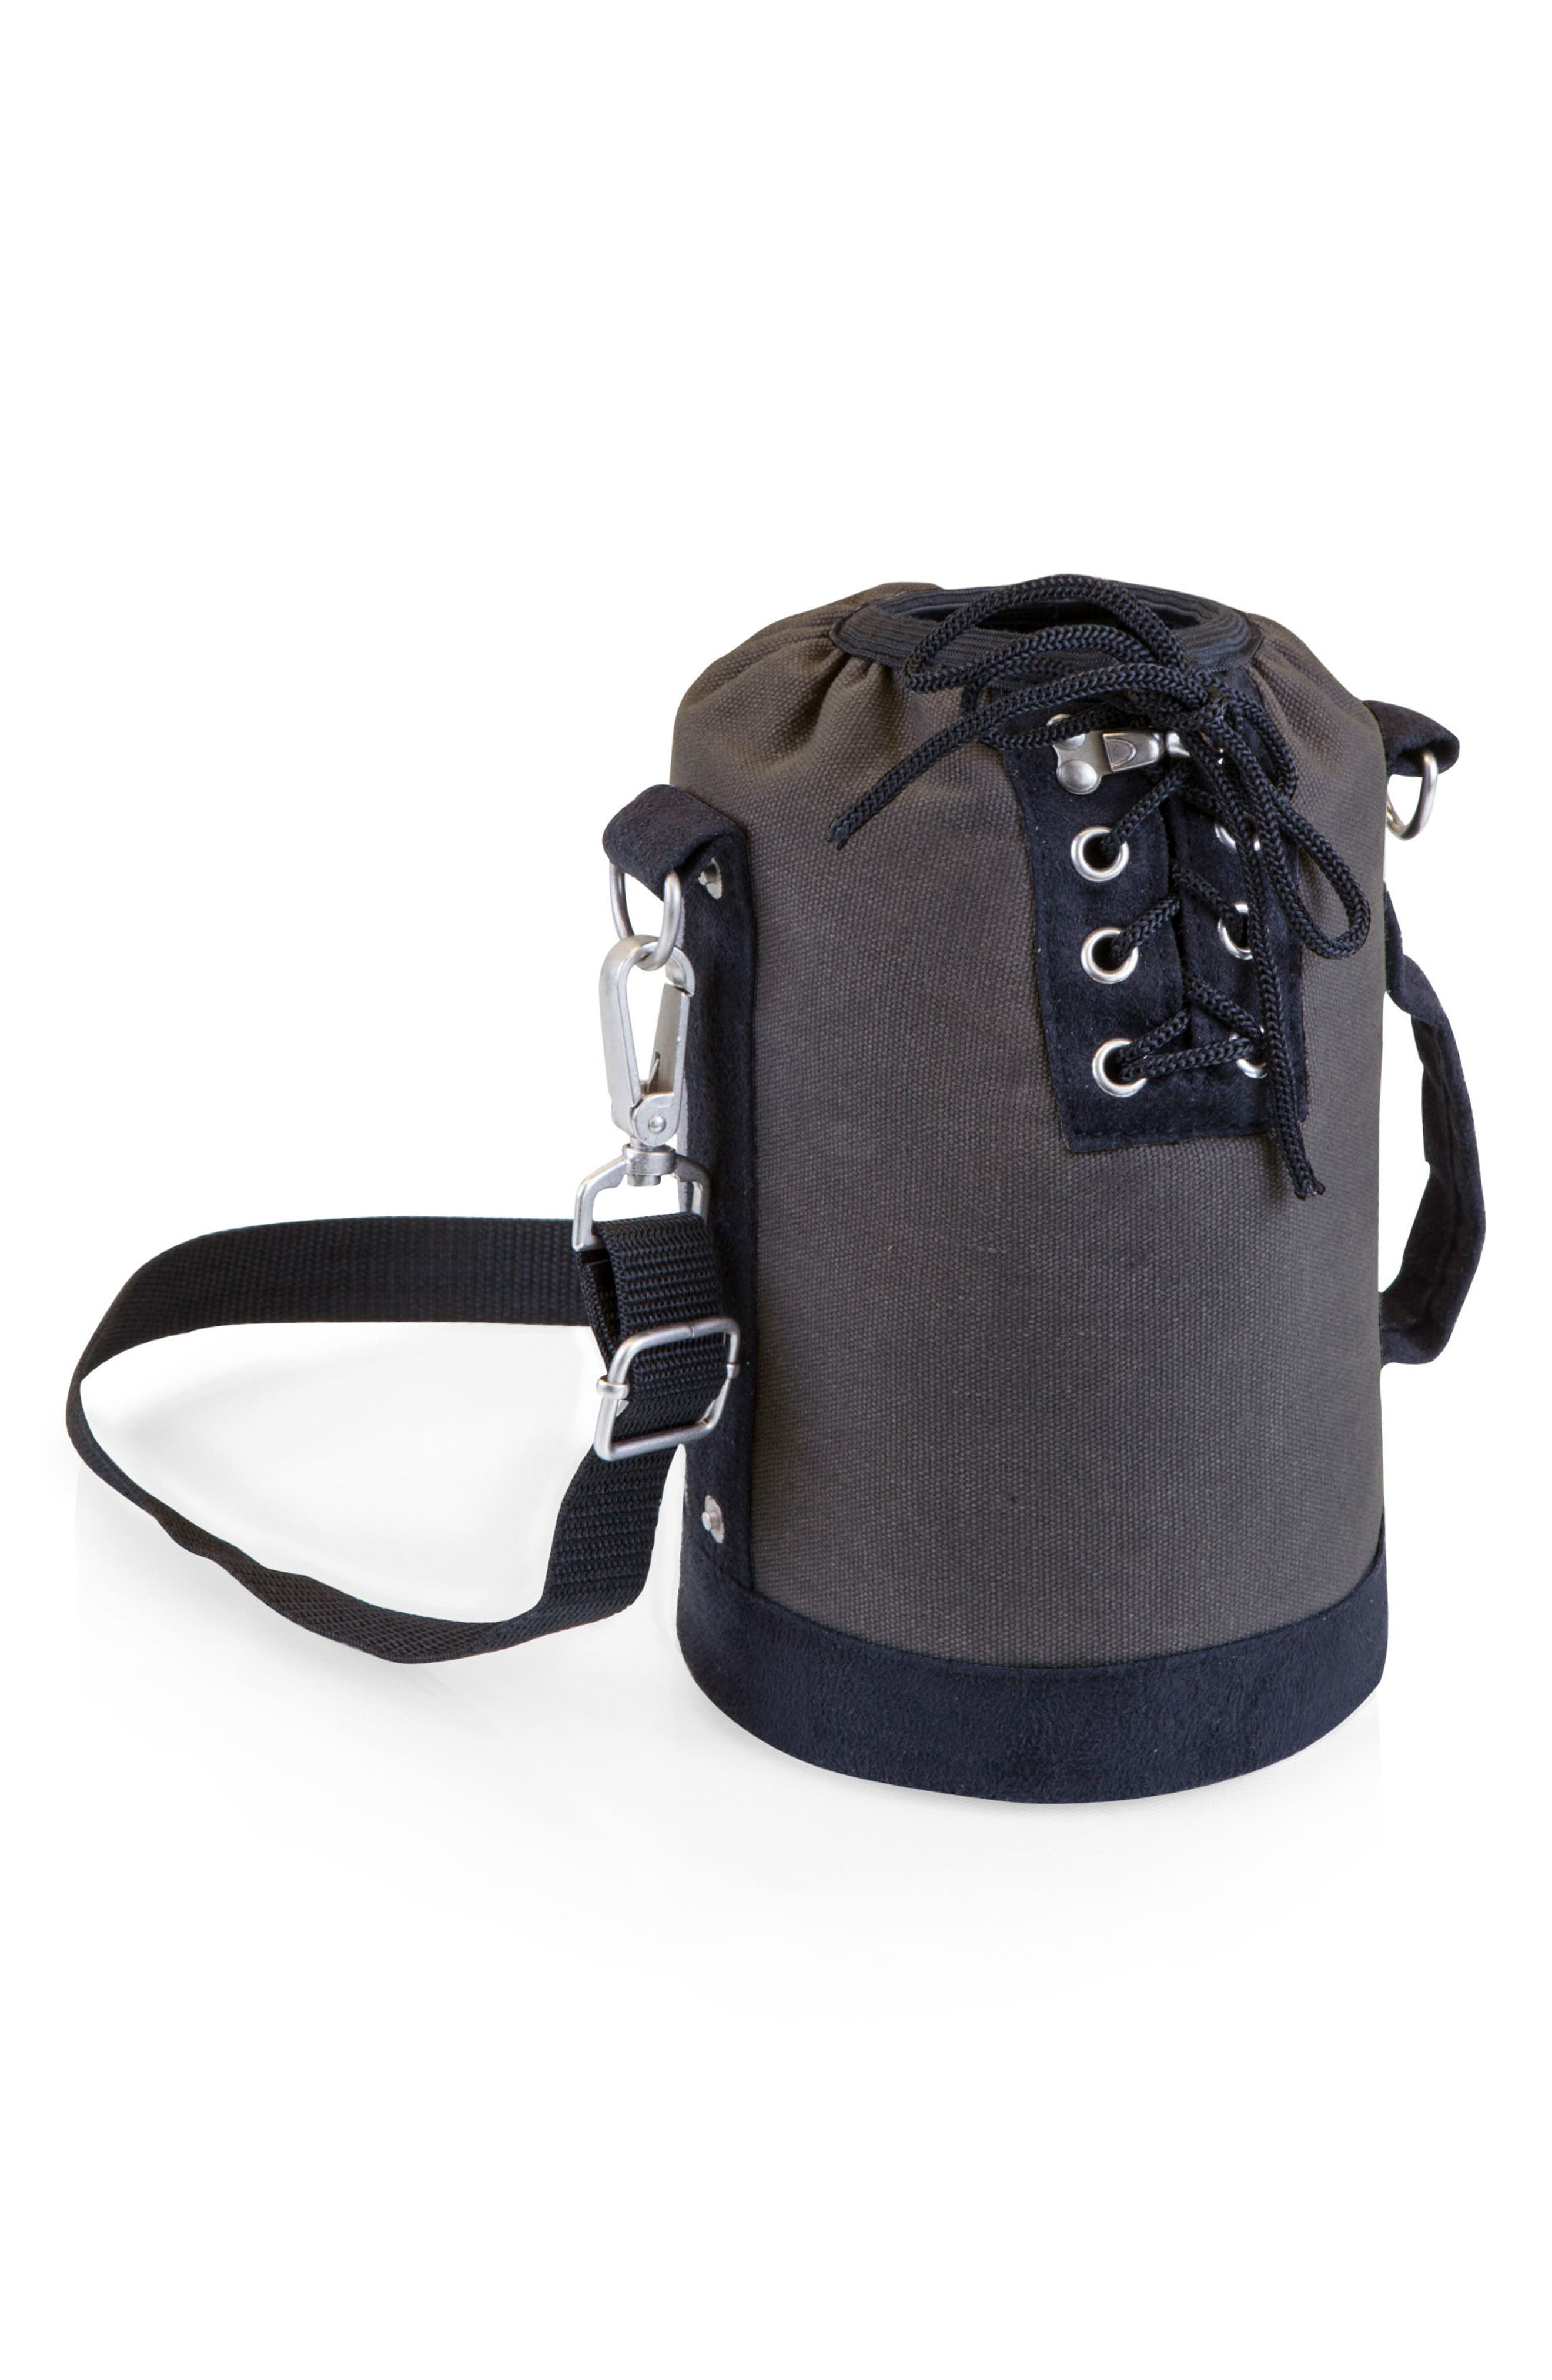 Insulated Growler Tote,                             Main thumbnail 1, color,                             020